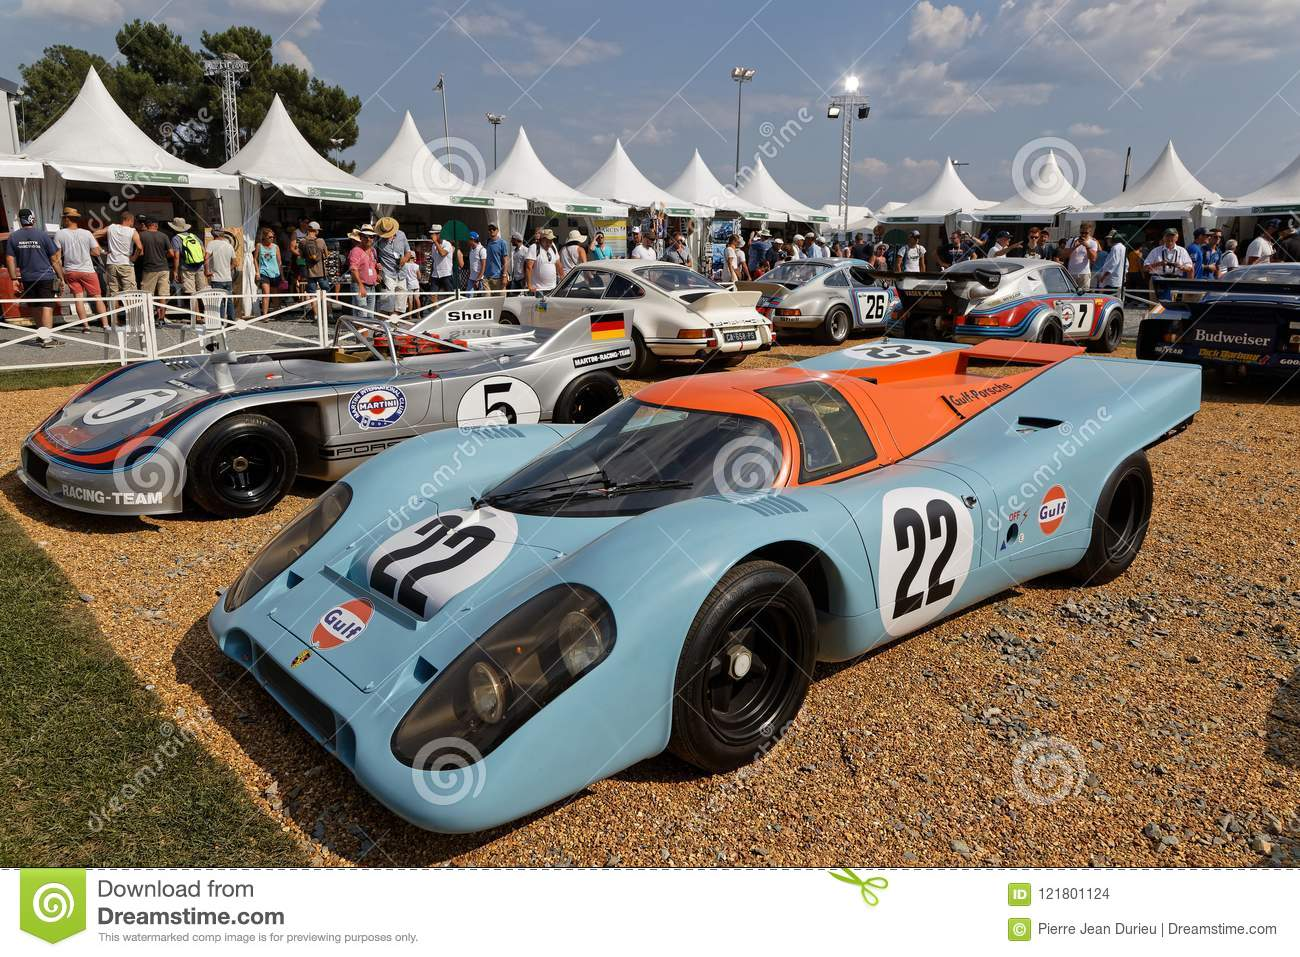 Exhibition Of Old Porsche Racing Cars Editorial Stock Image Image Of Famous Porsche 121801124